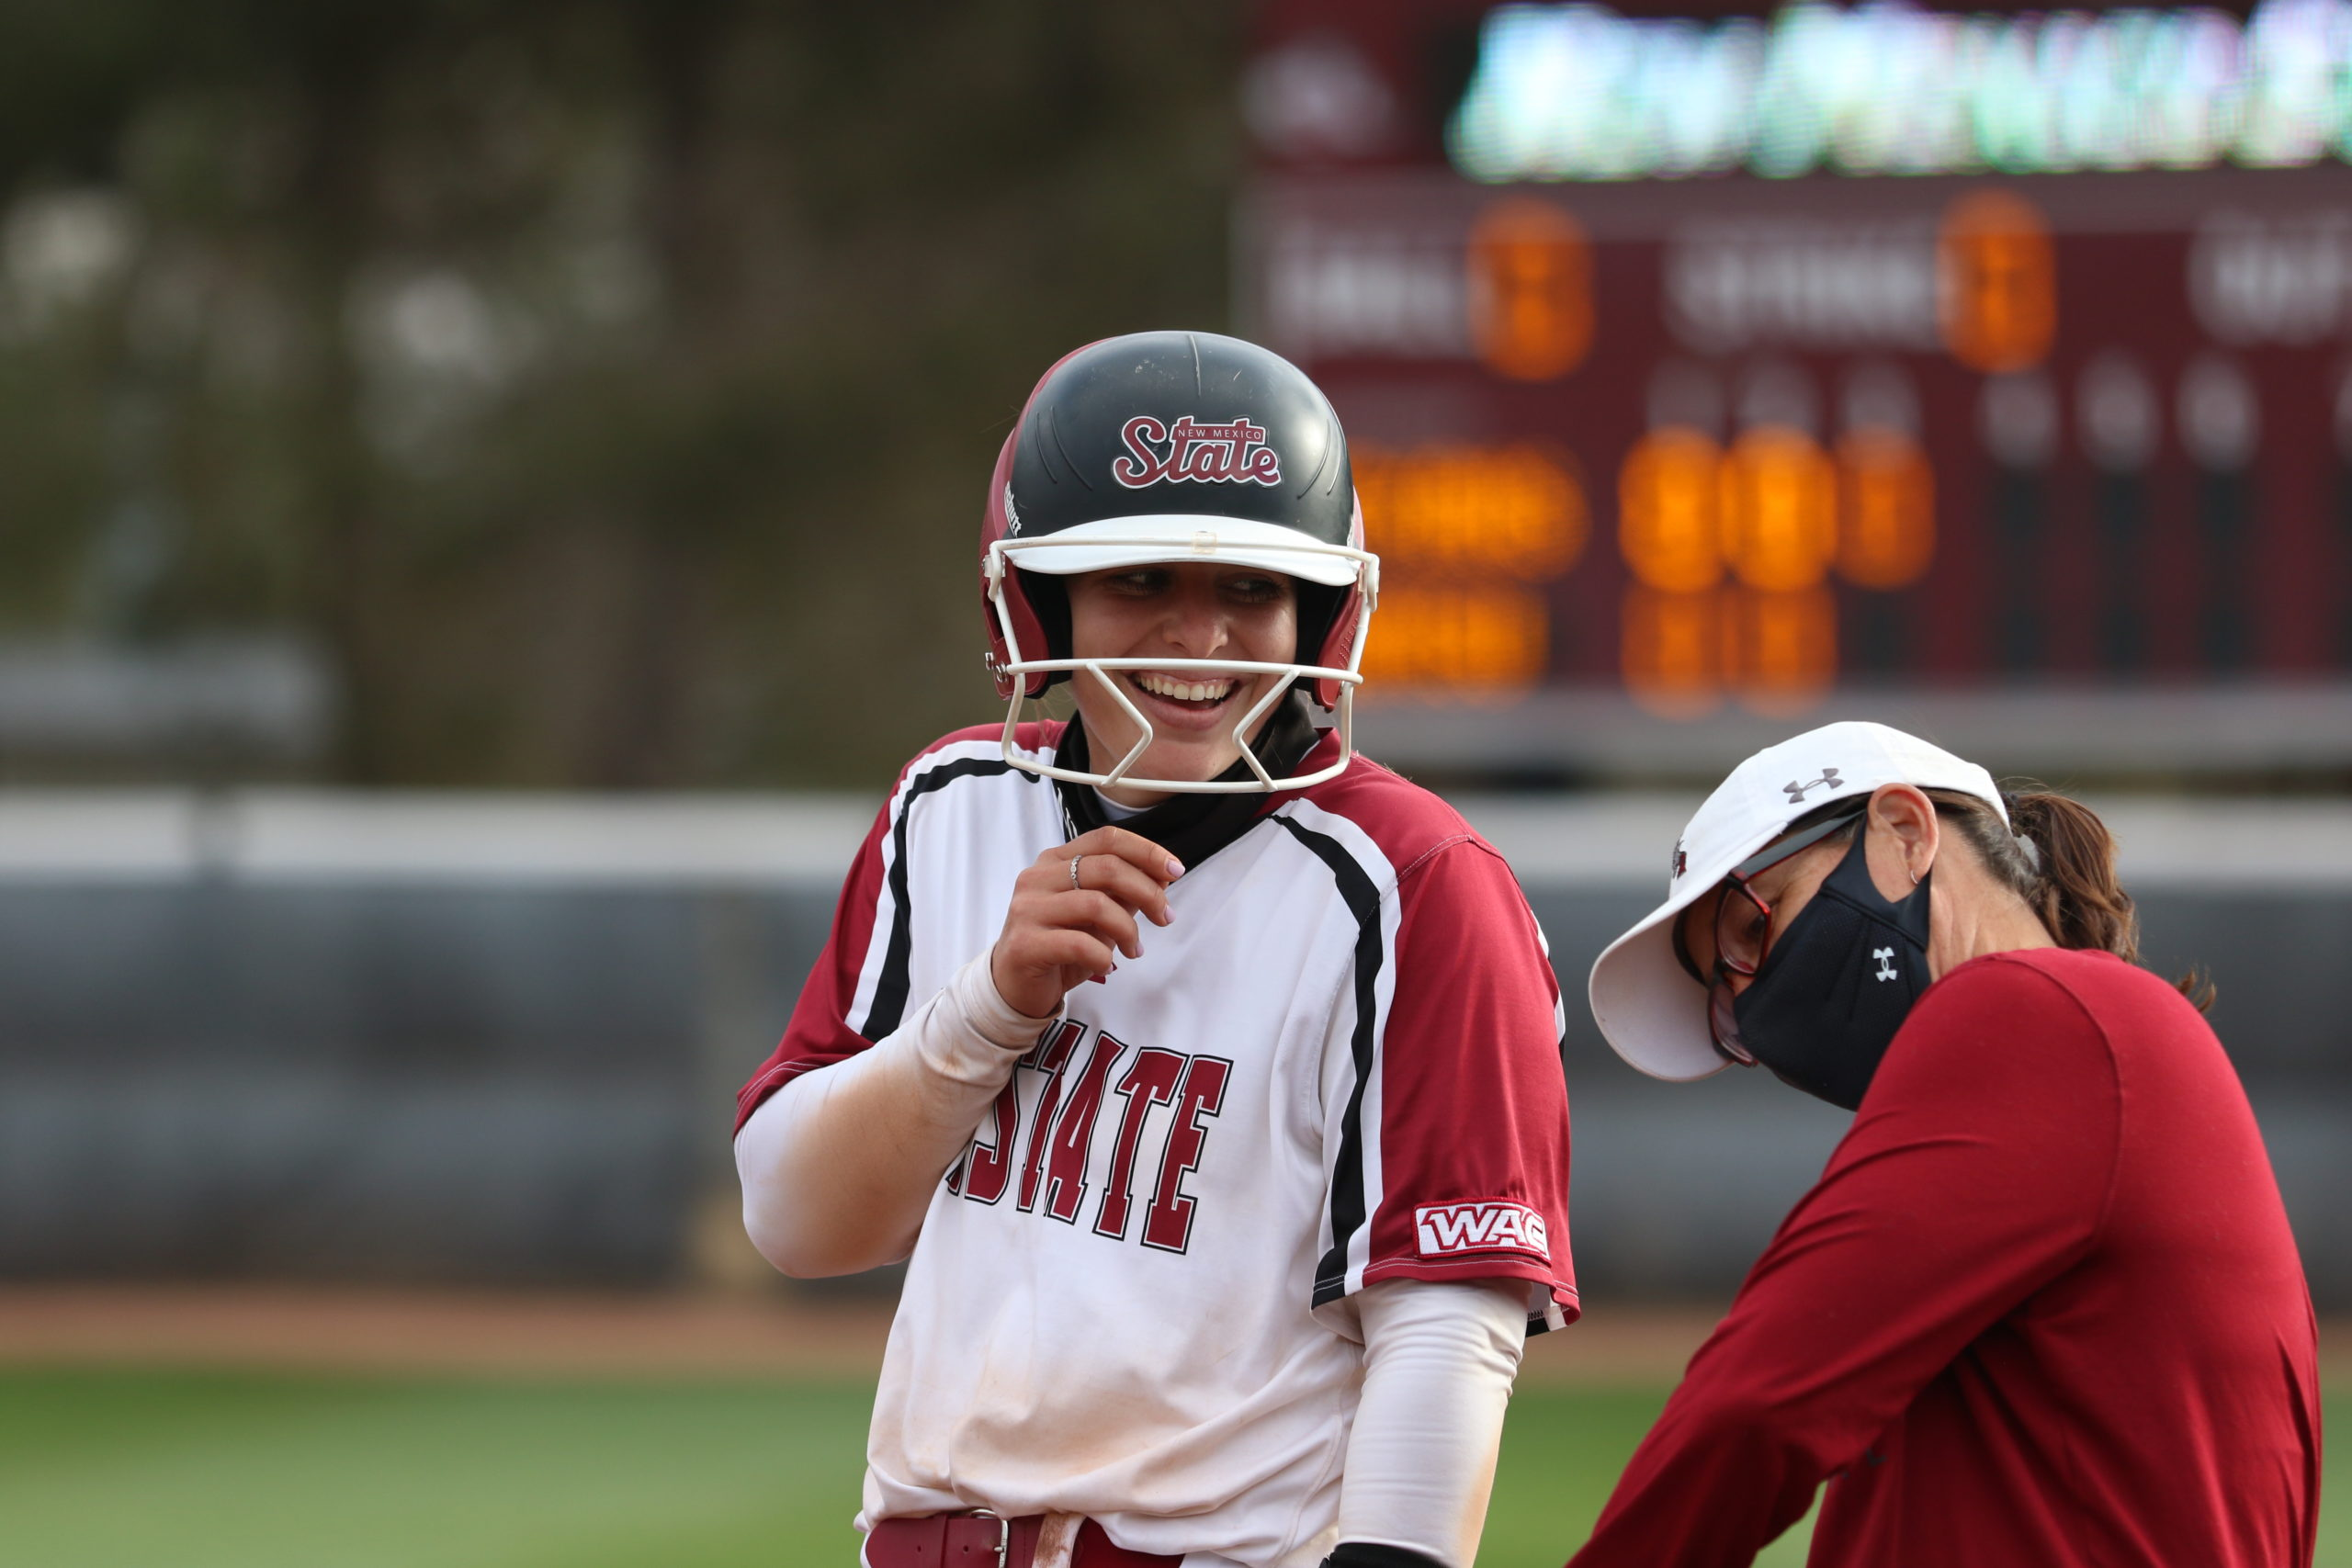 NM State senior catcher Nikki Butler smiles at her first base coach after a base hit against Tarleton State on Apr. 16 in Las Cruces, N.M.